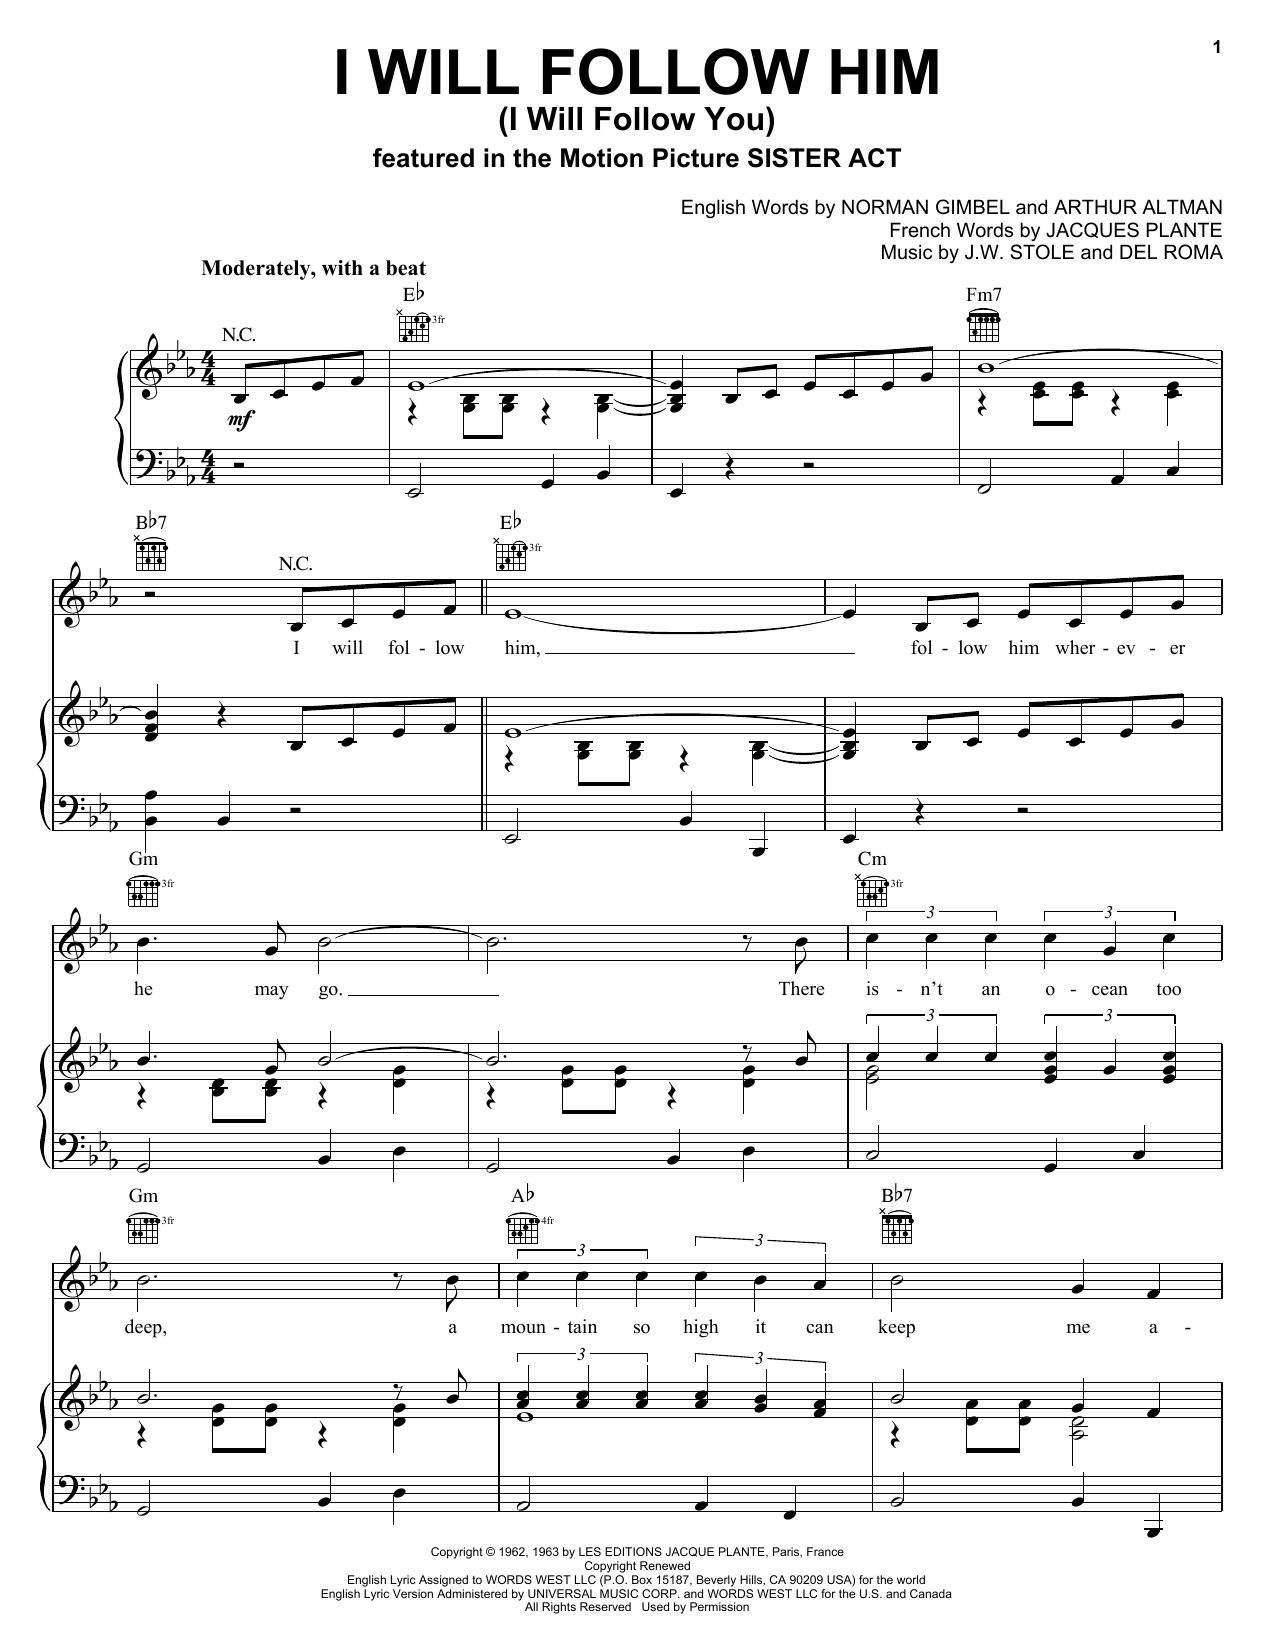 Little Peggy March I Will Follow Him (I Will Follow You) sheet music notes and chords. Download Printable PDF.